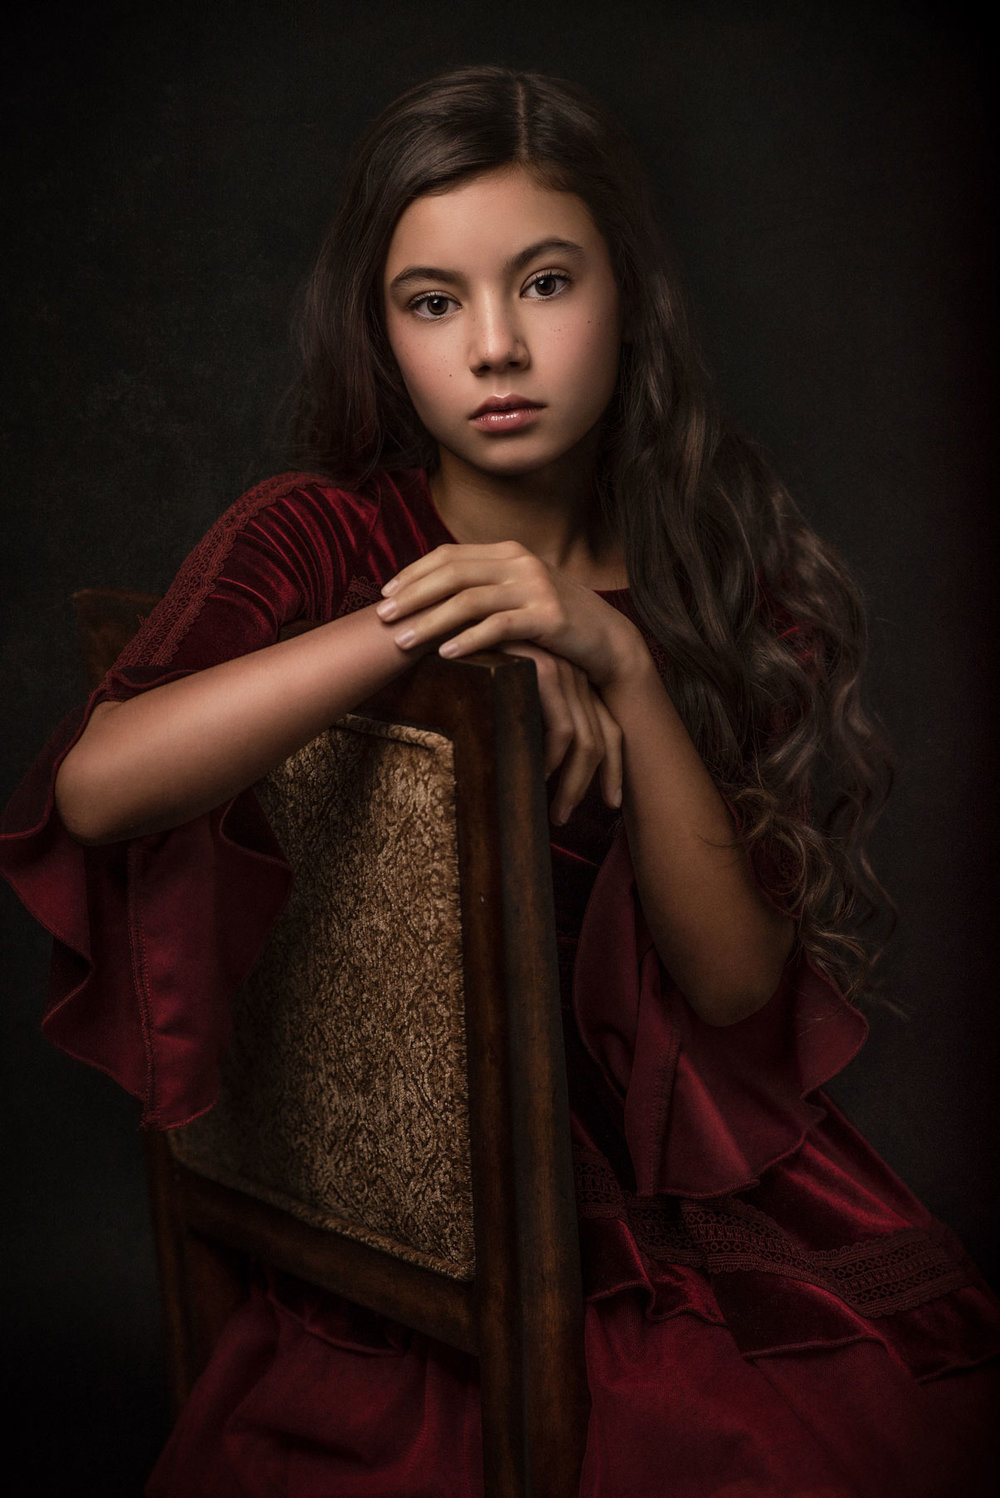 barbara_macferrin_photography_boulder_colorado_80303_fine_art_children_girl_vintage_velvet_dress_long_hair.jpg